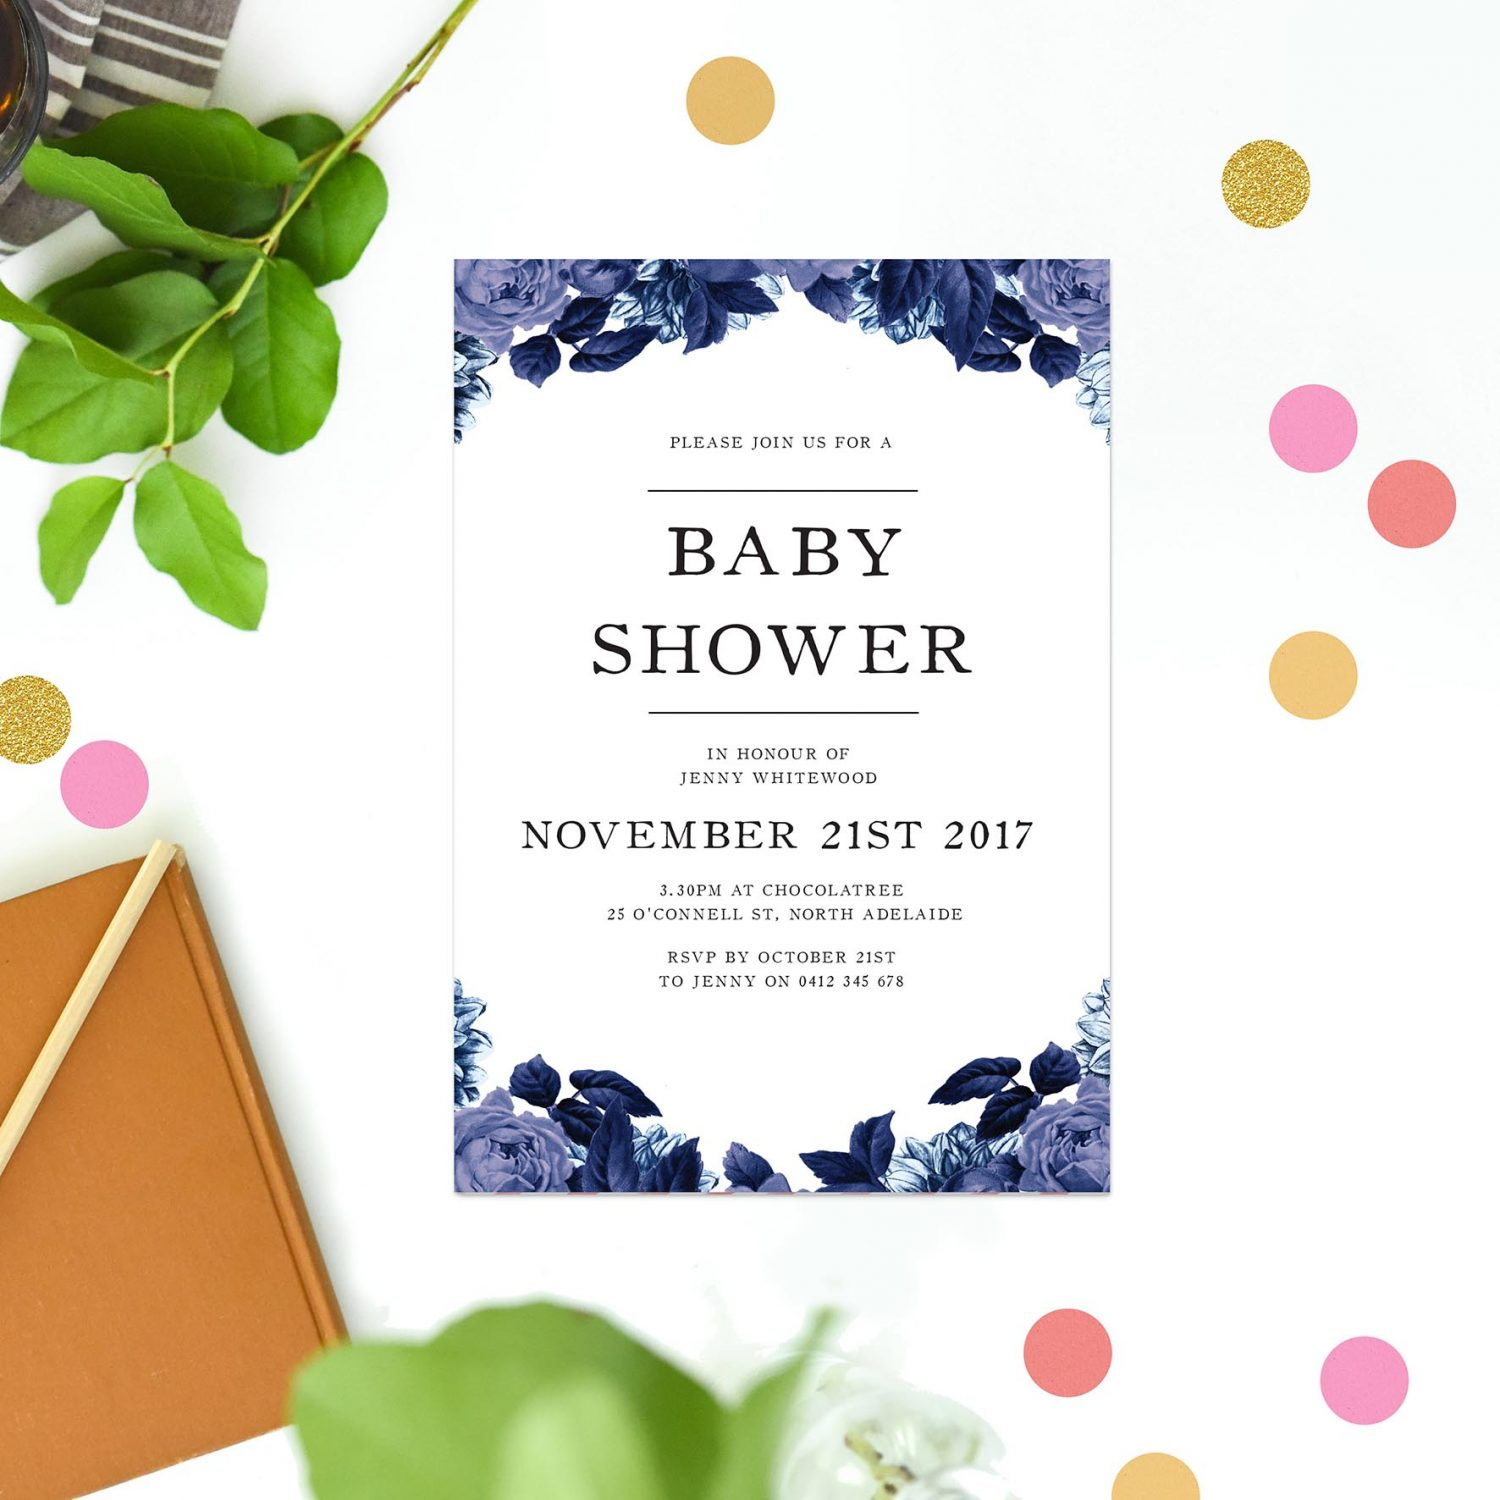 Blue rose baby shower invitations by sail and swan blue rose baby shower invitations filmwisefo